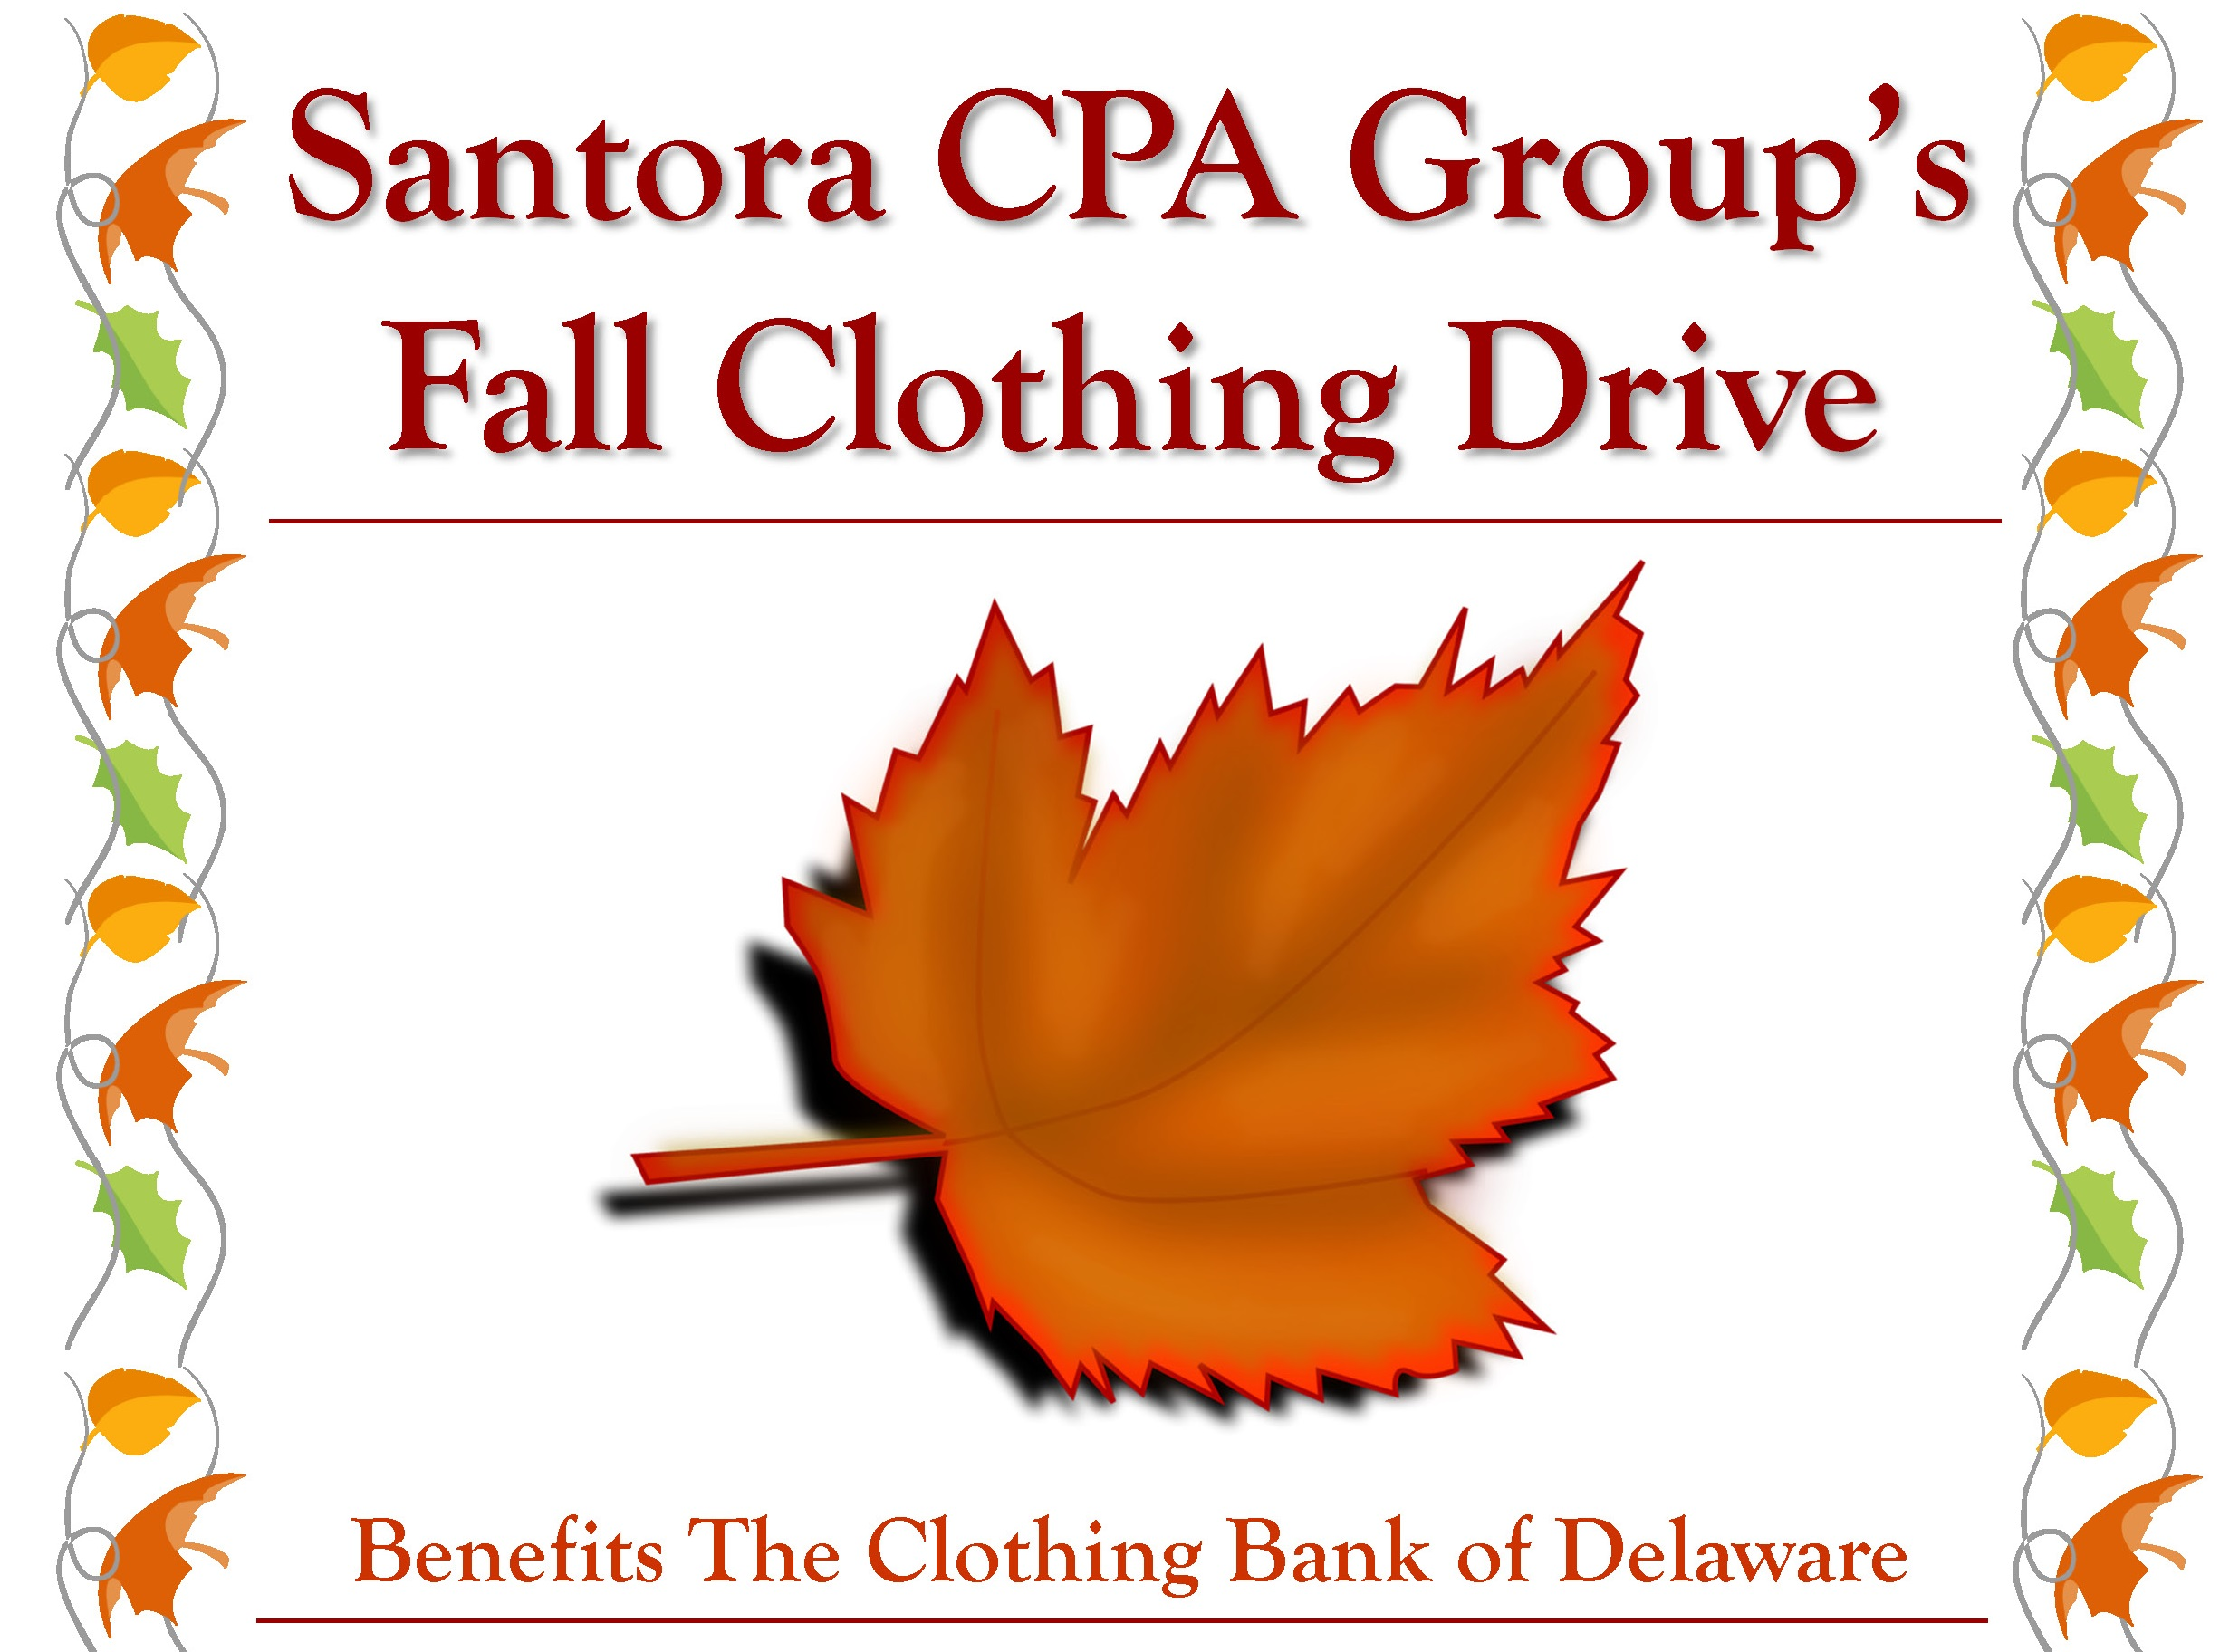 Our Annual Clothing Drive